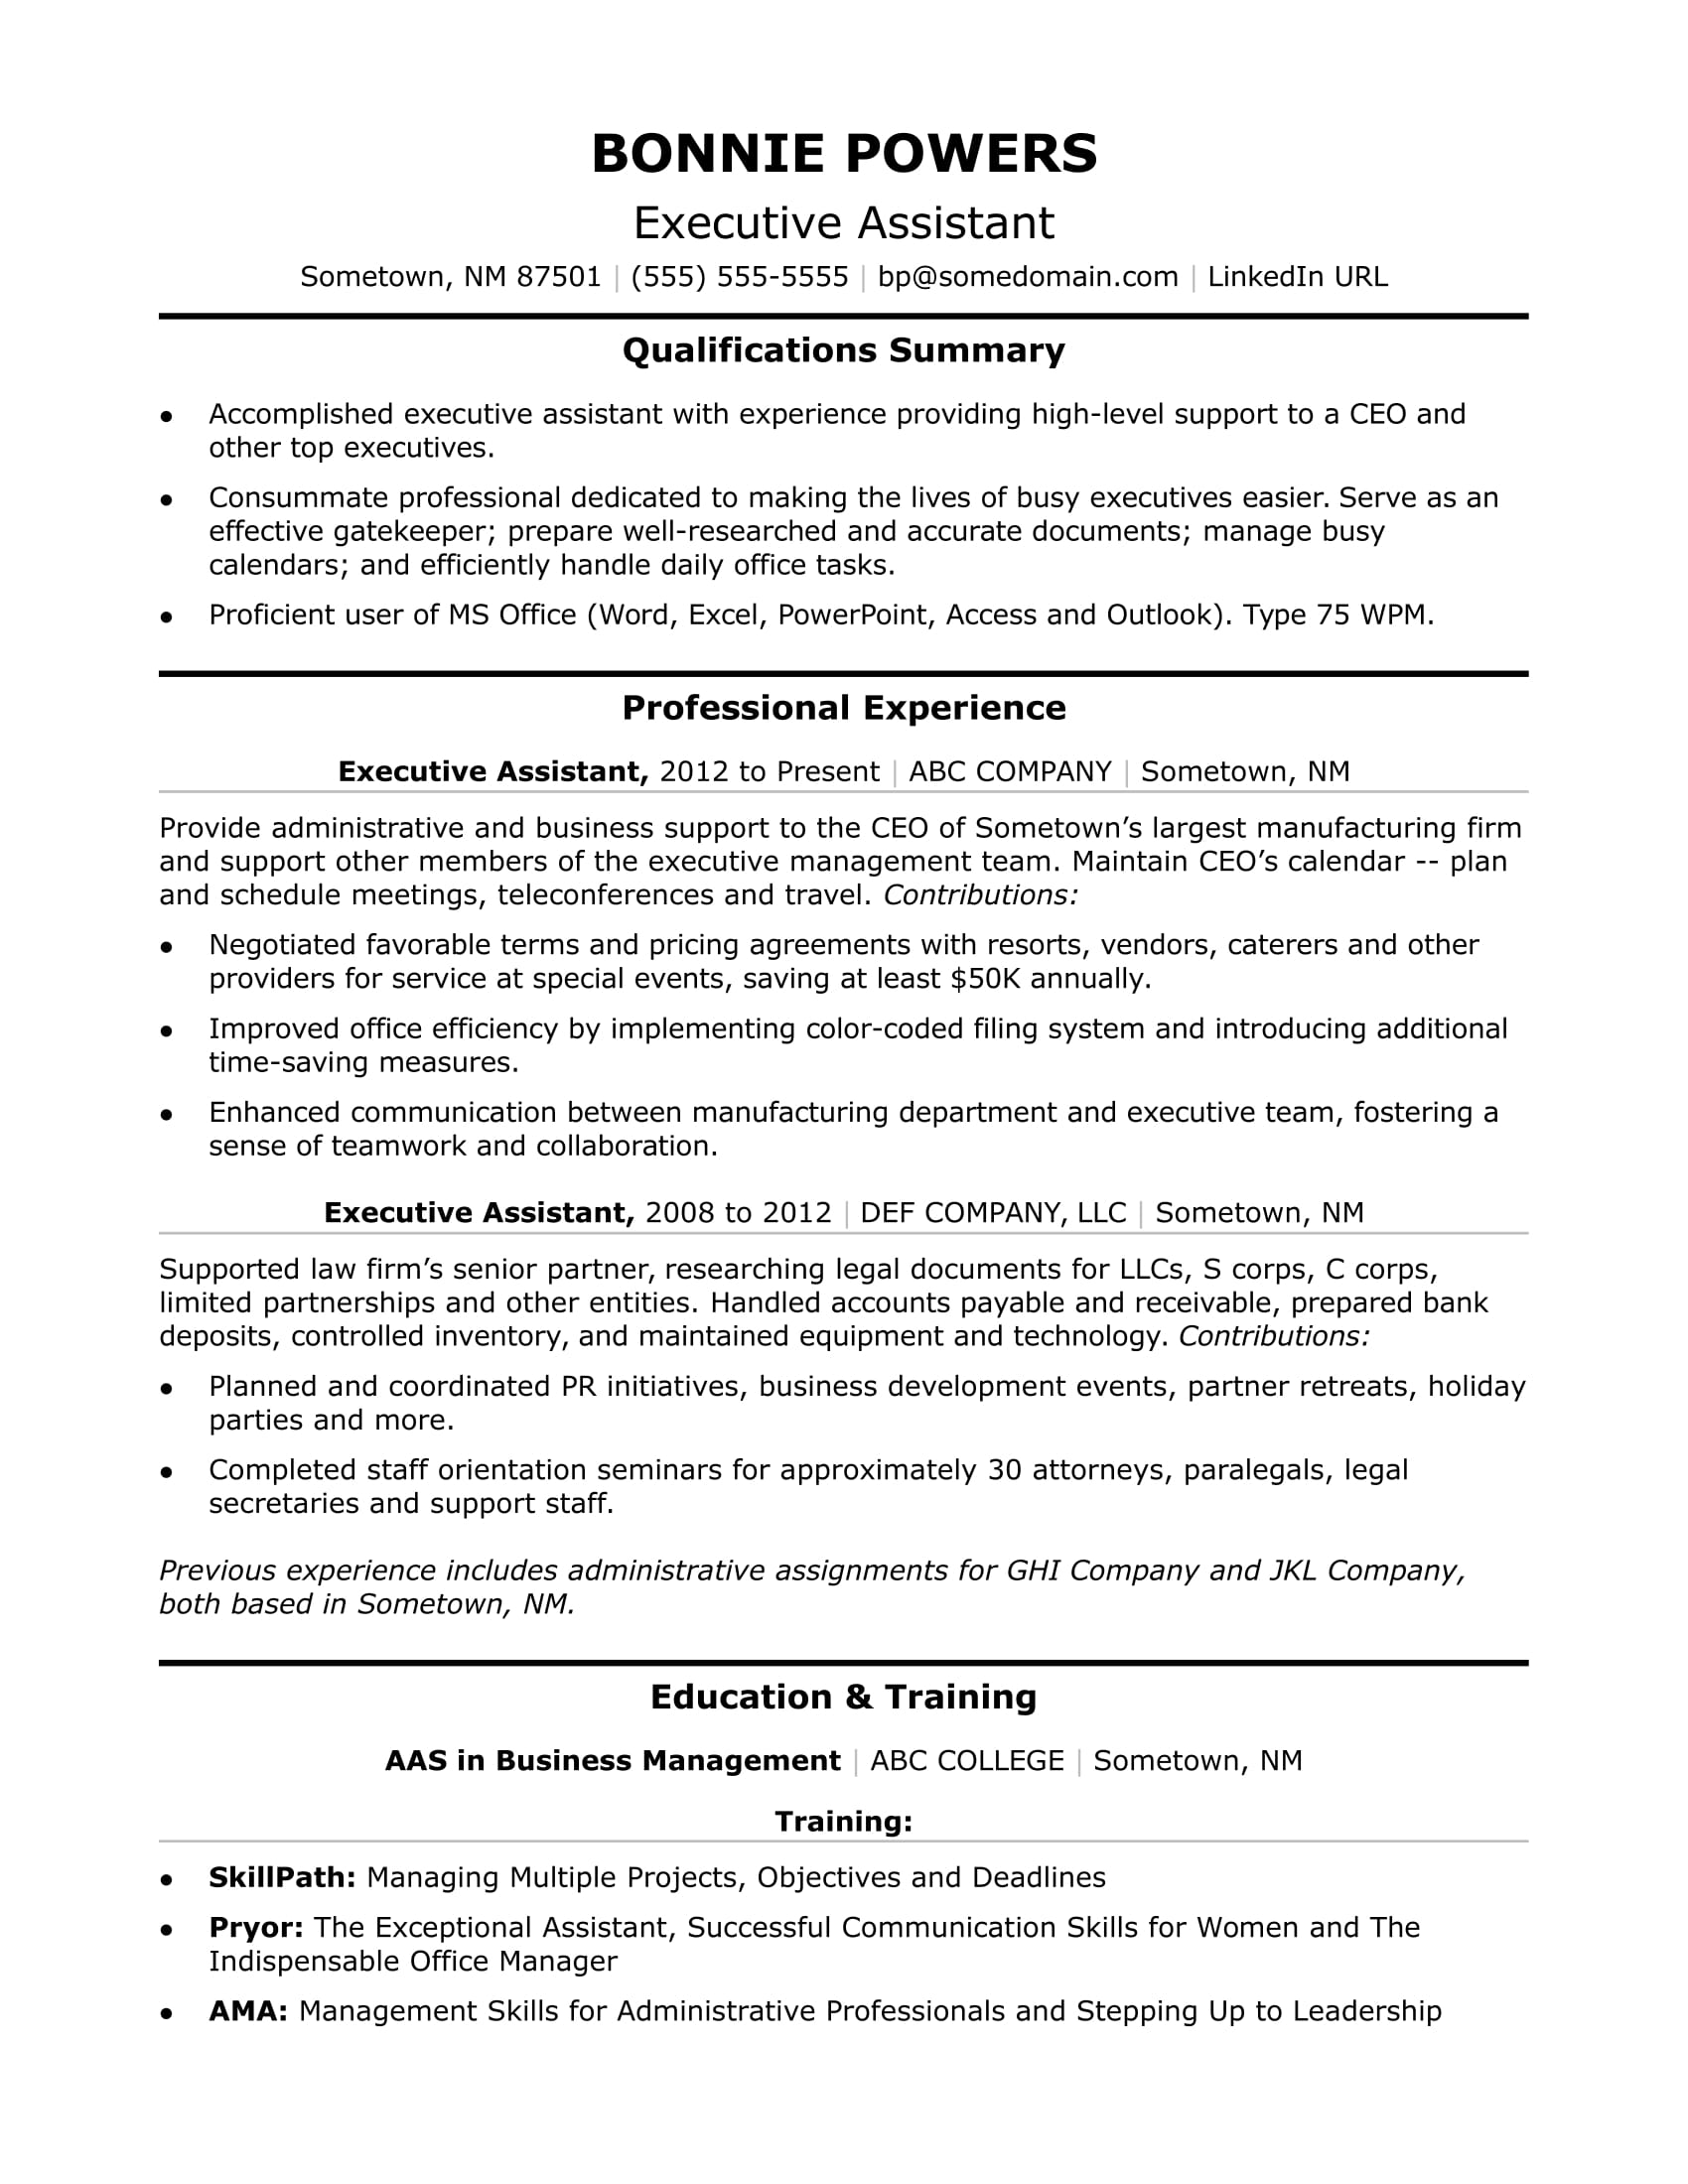 Executive Administrative Assistant Resume Sample Monster